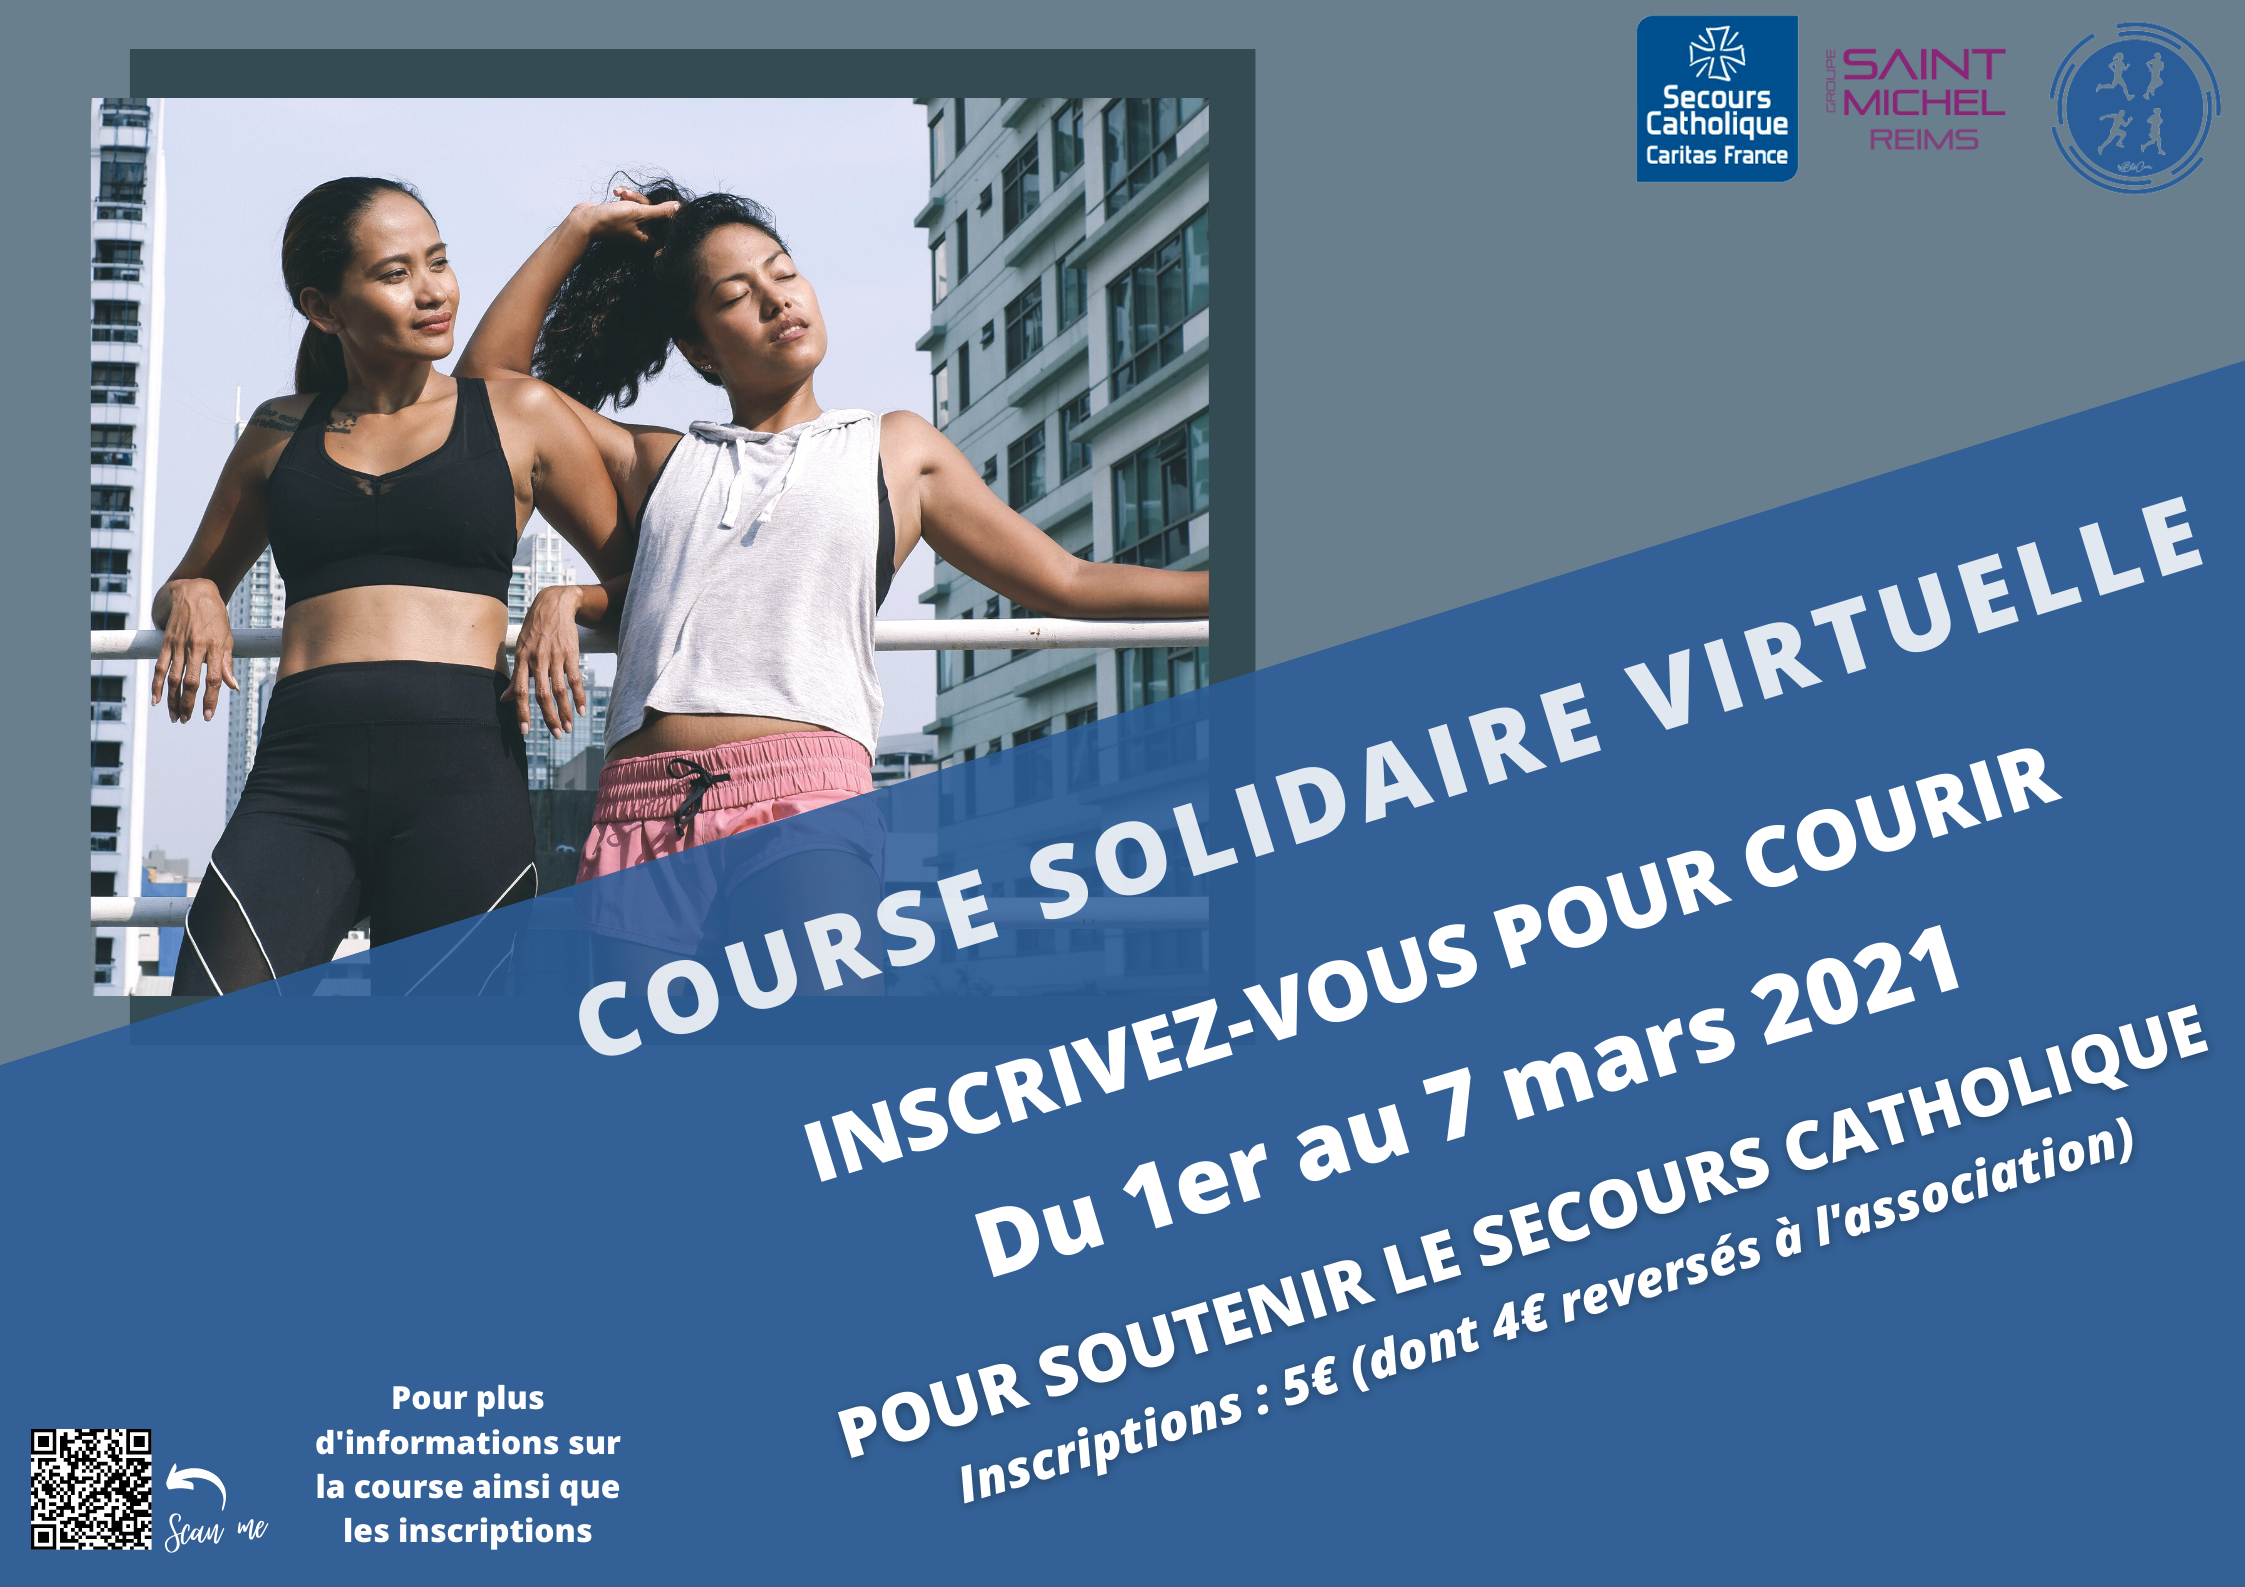 COURSE SOLIDAIRE VIRTUELLE - MARS 2021